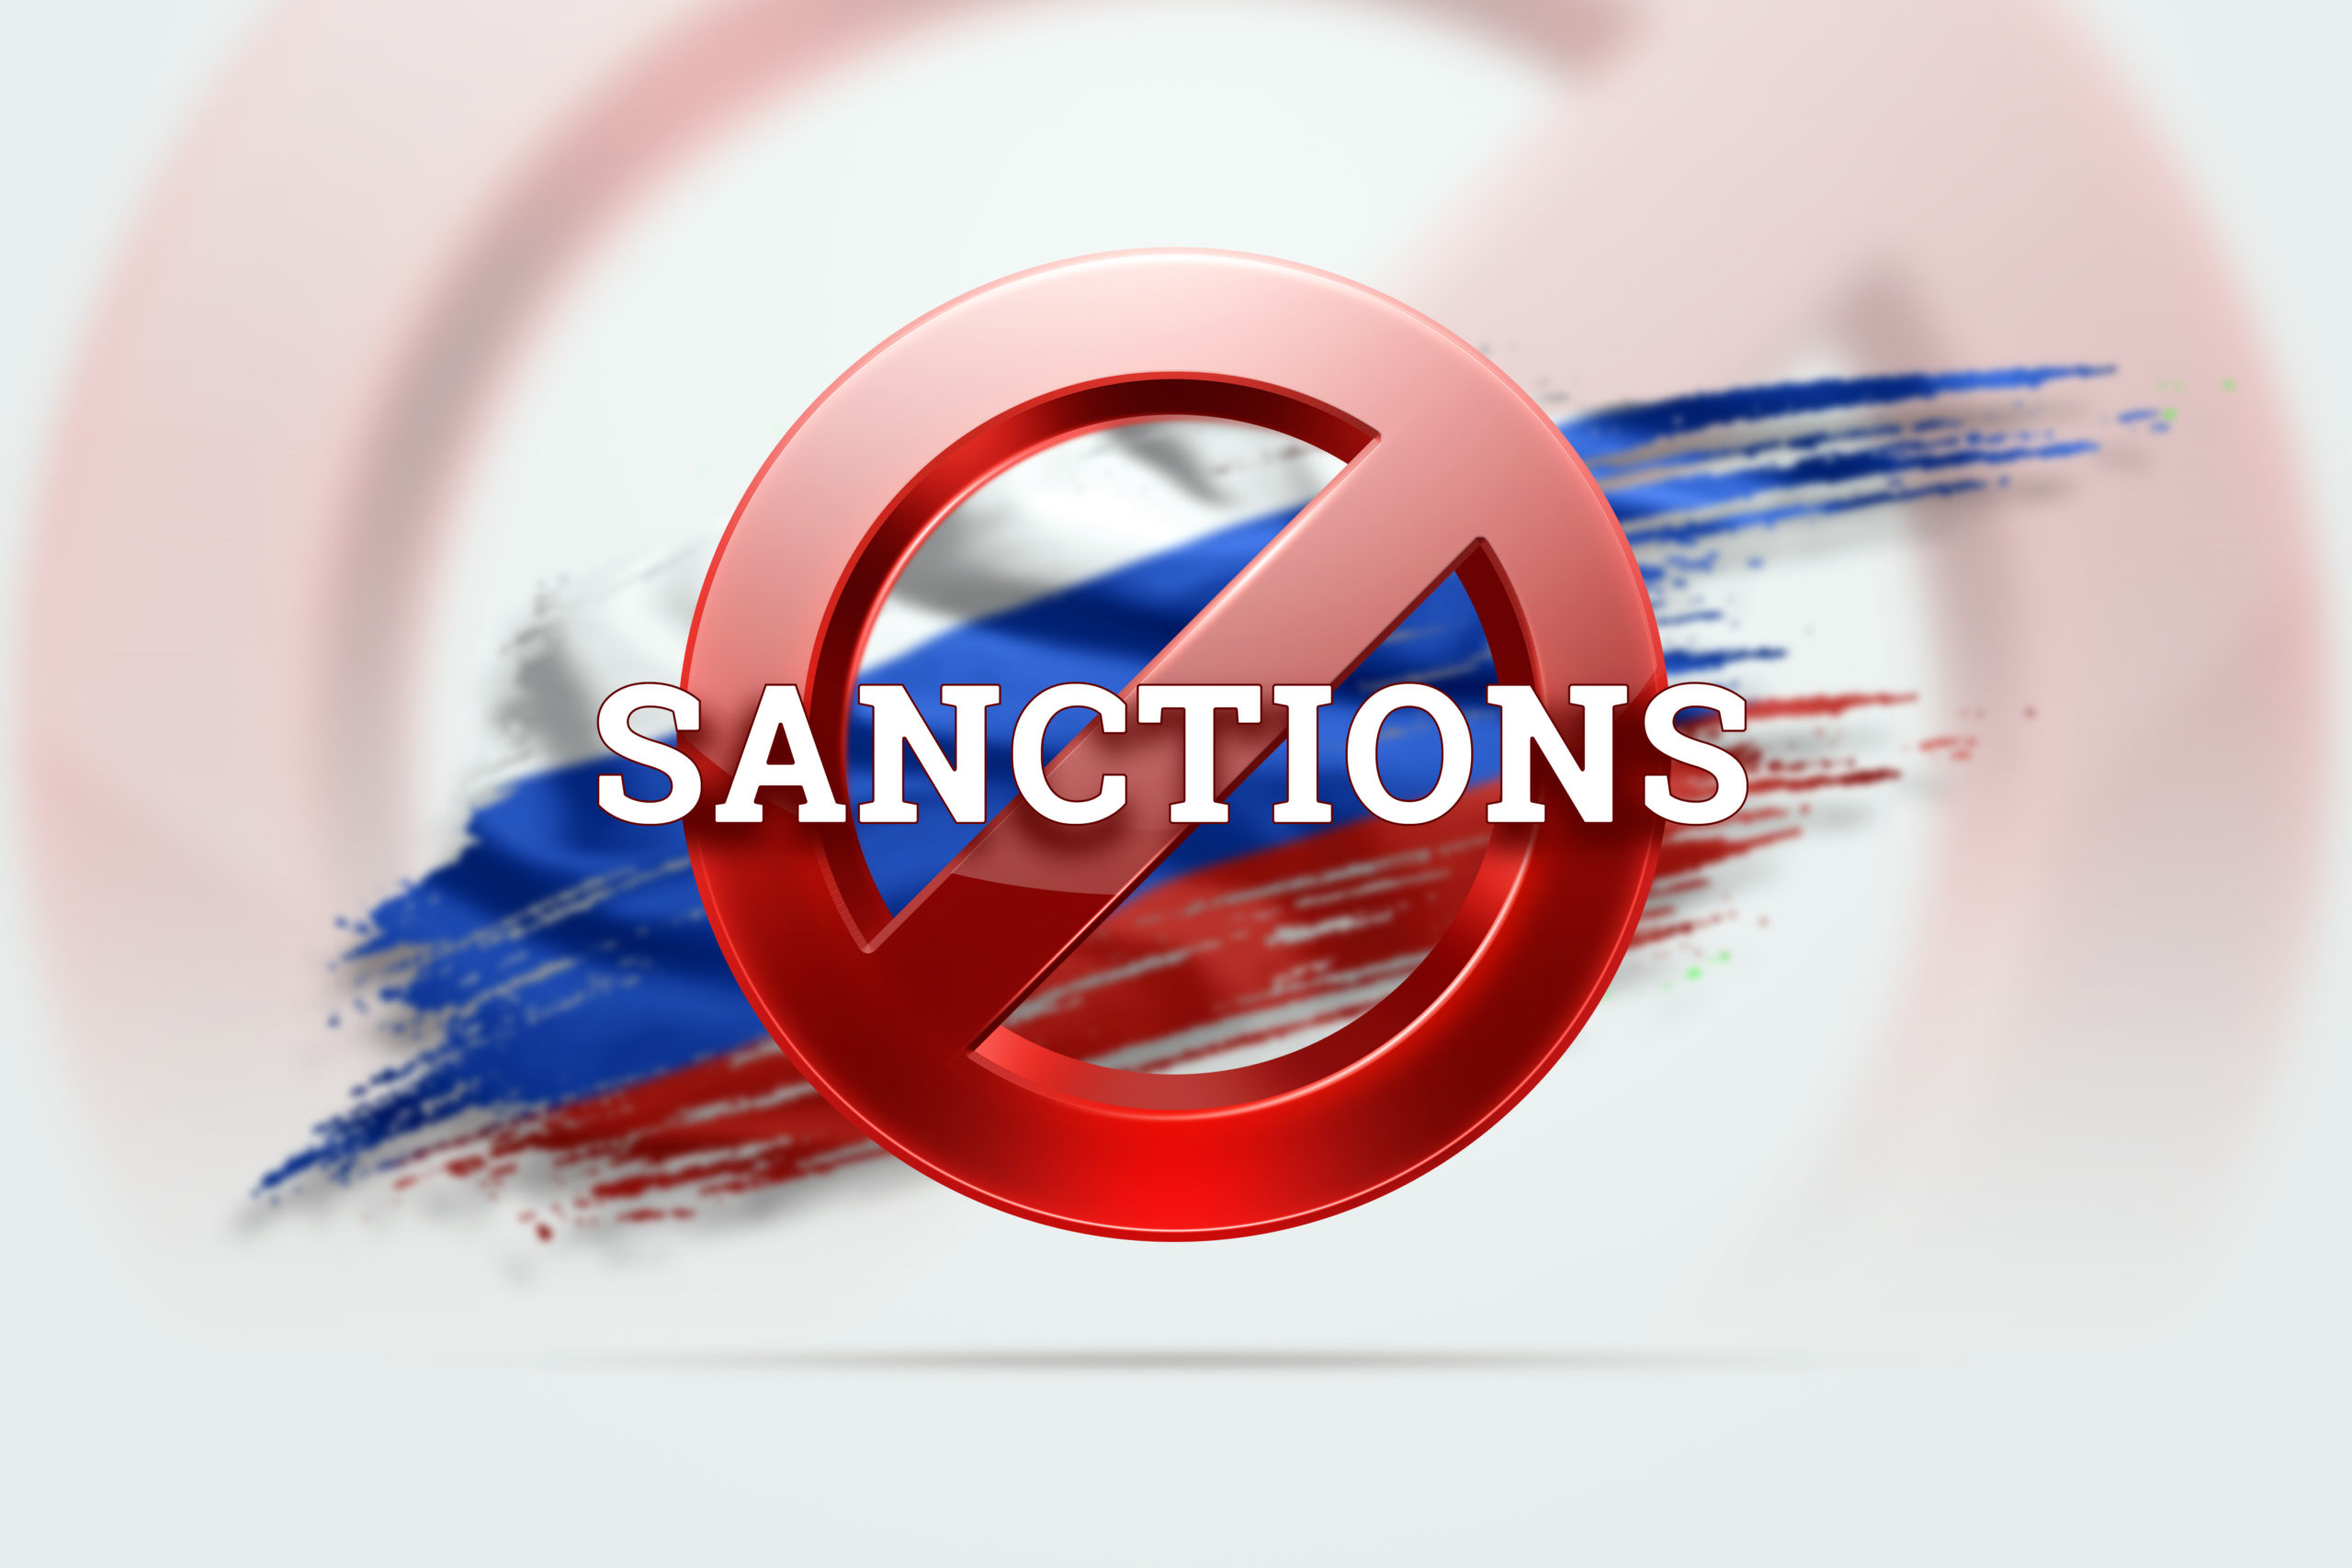 The Sign Of The Ban, The Inscription Of The Sanctions On The Flag Of Russia. Concept Of Sanctions And Embargo, Import Ban, Politics, 3d Rendering, 3d Illustration.